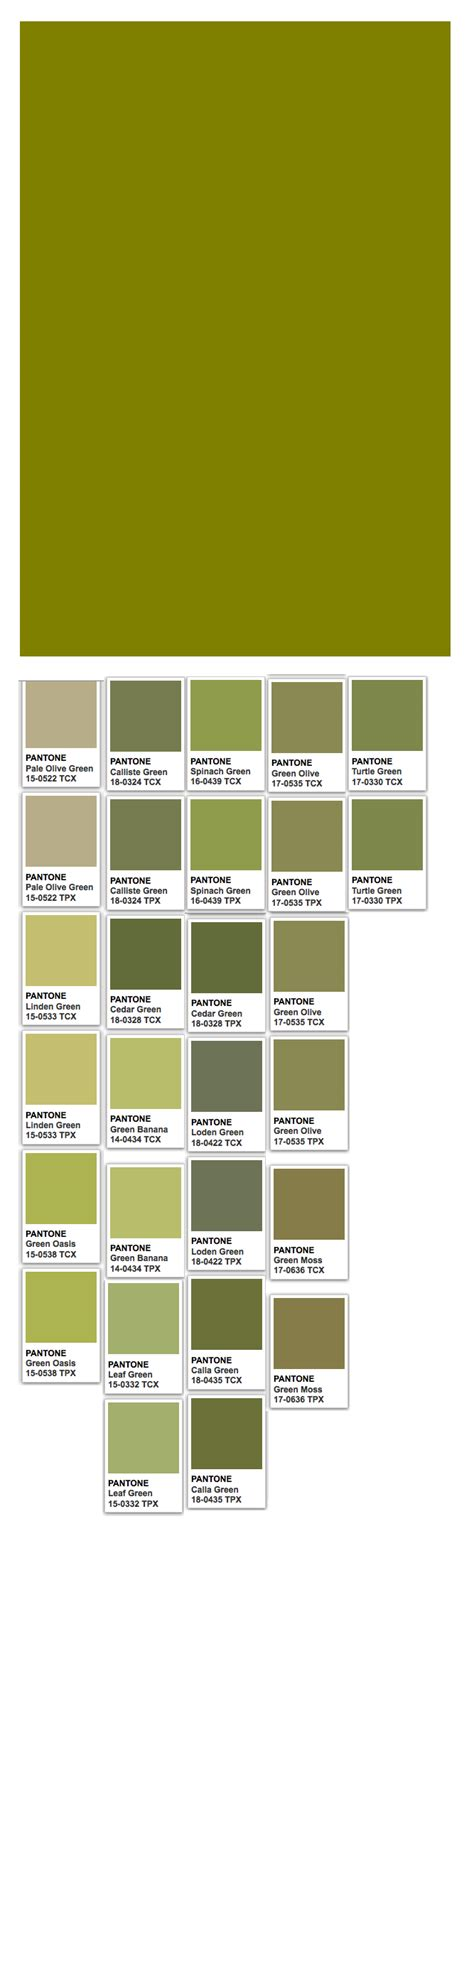 olive web and pantone colors color thesaurus color wheels and information olive green